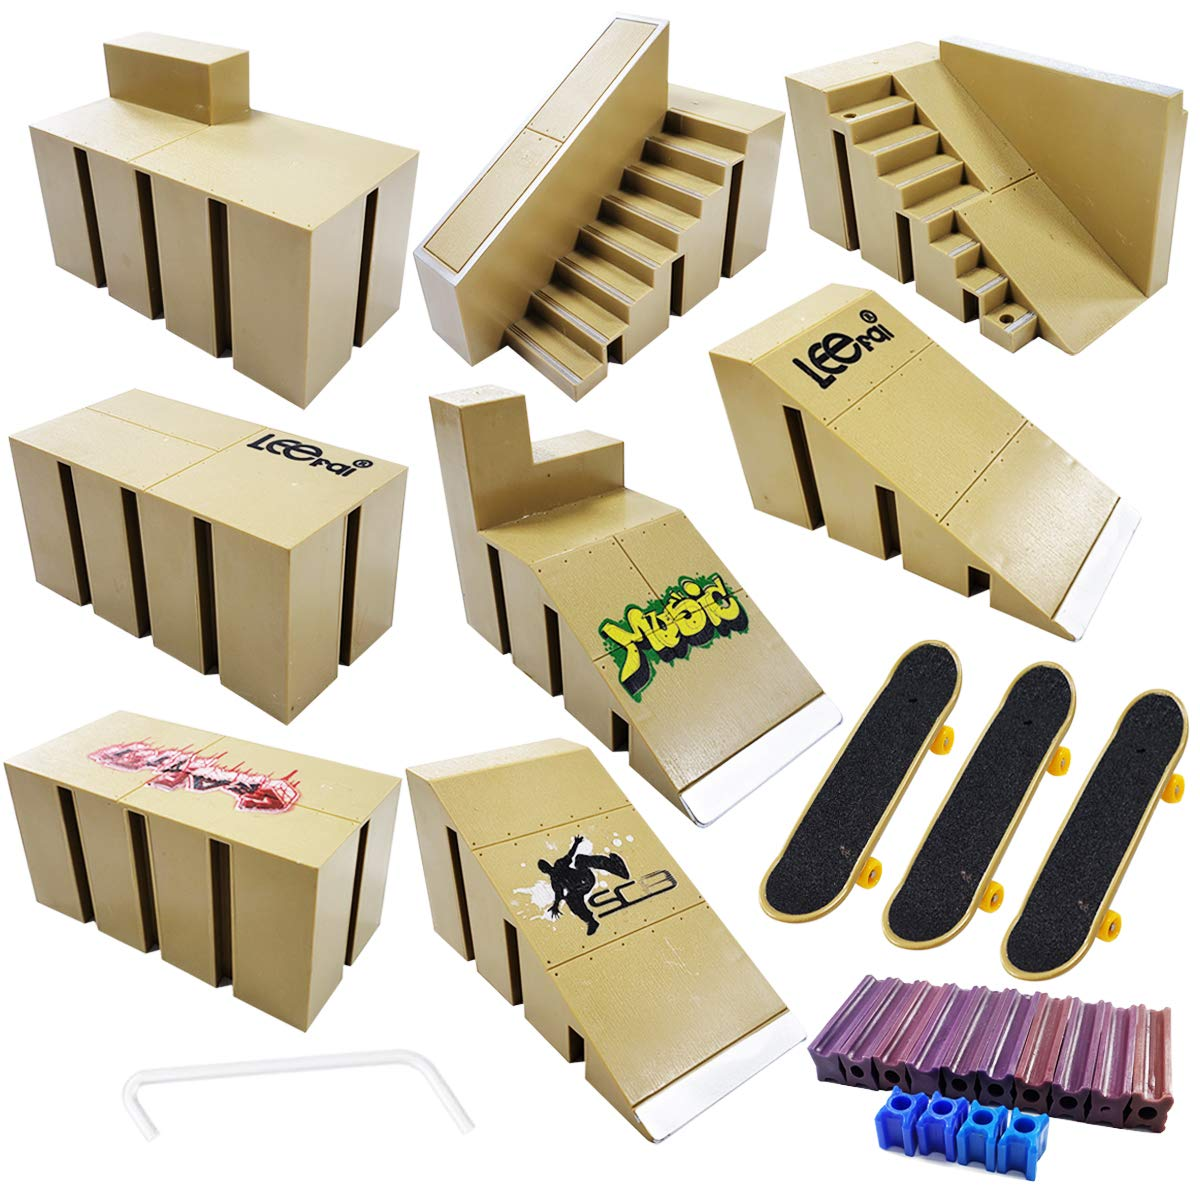 Ispeedytech 9pcs Professional Skate Park Kit Ramp for Mini Fingerboards Finger Skateboard by Ispeedytech (Image #3)